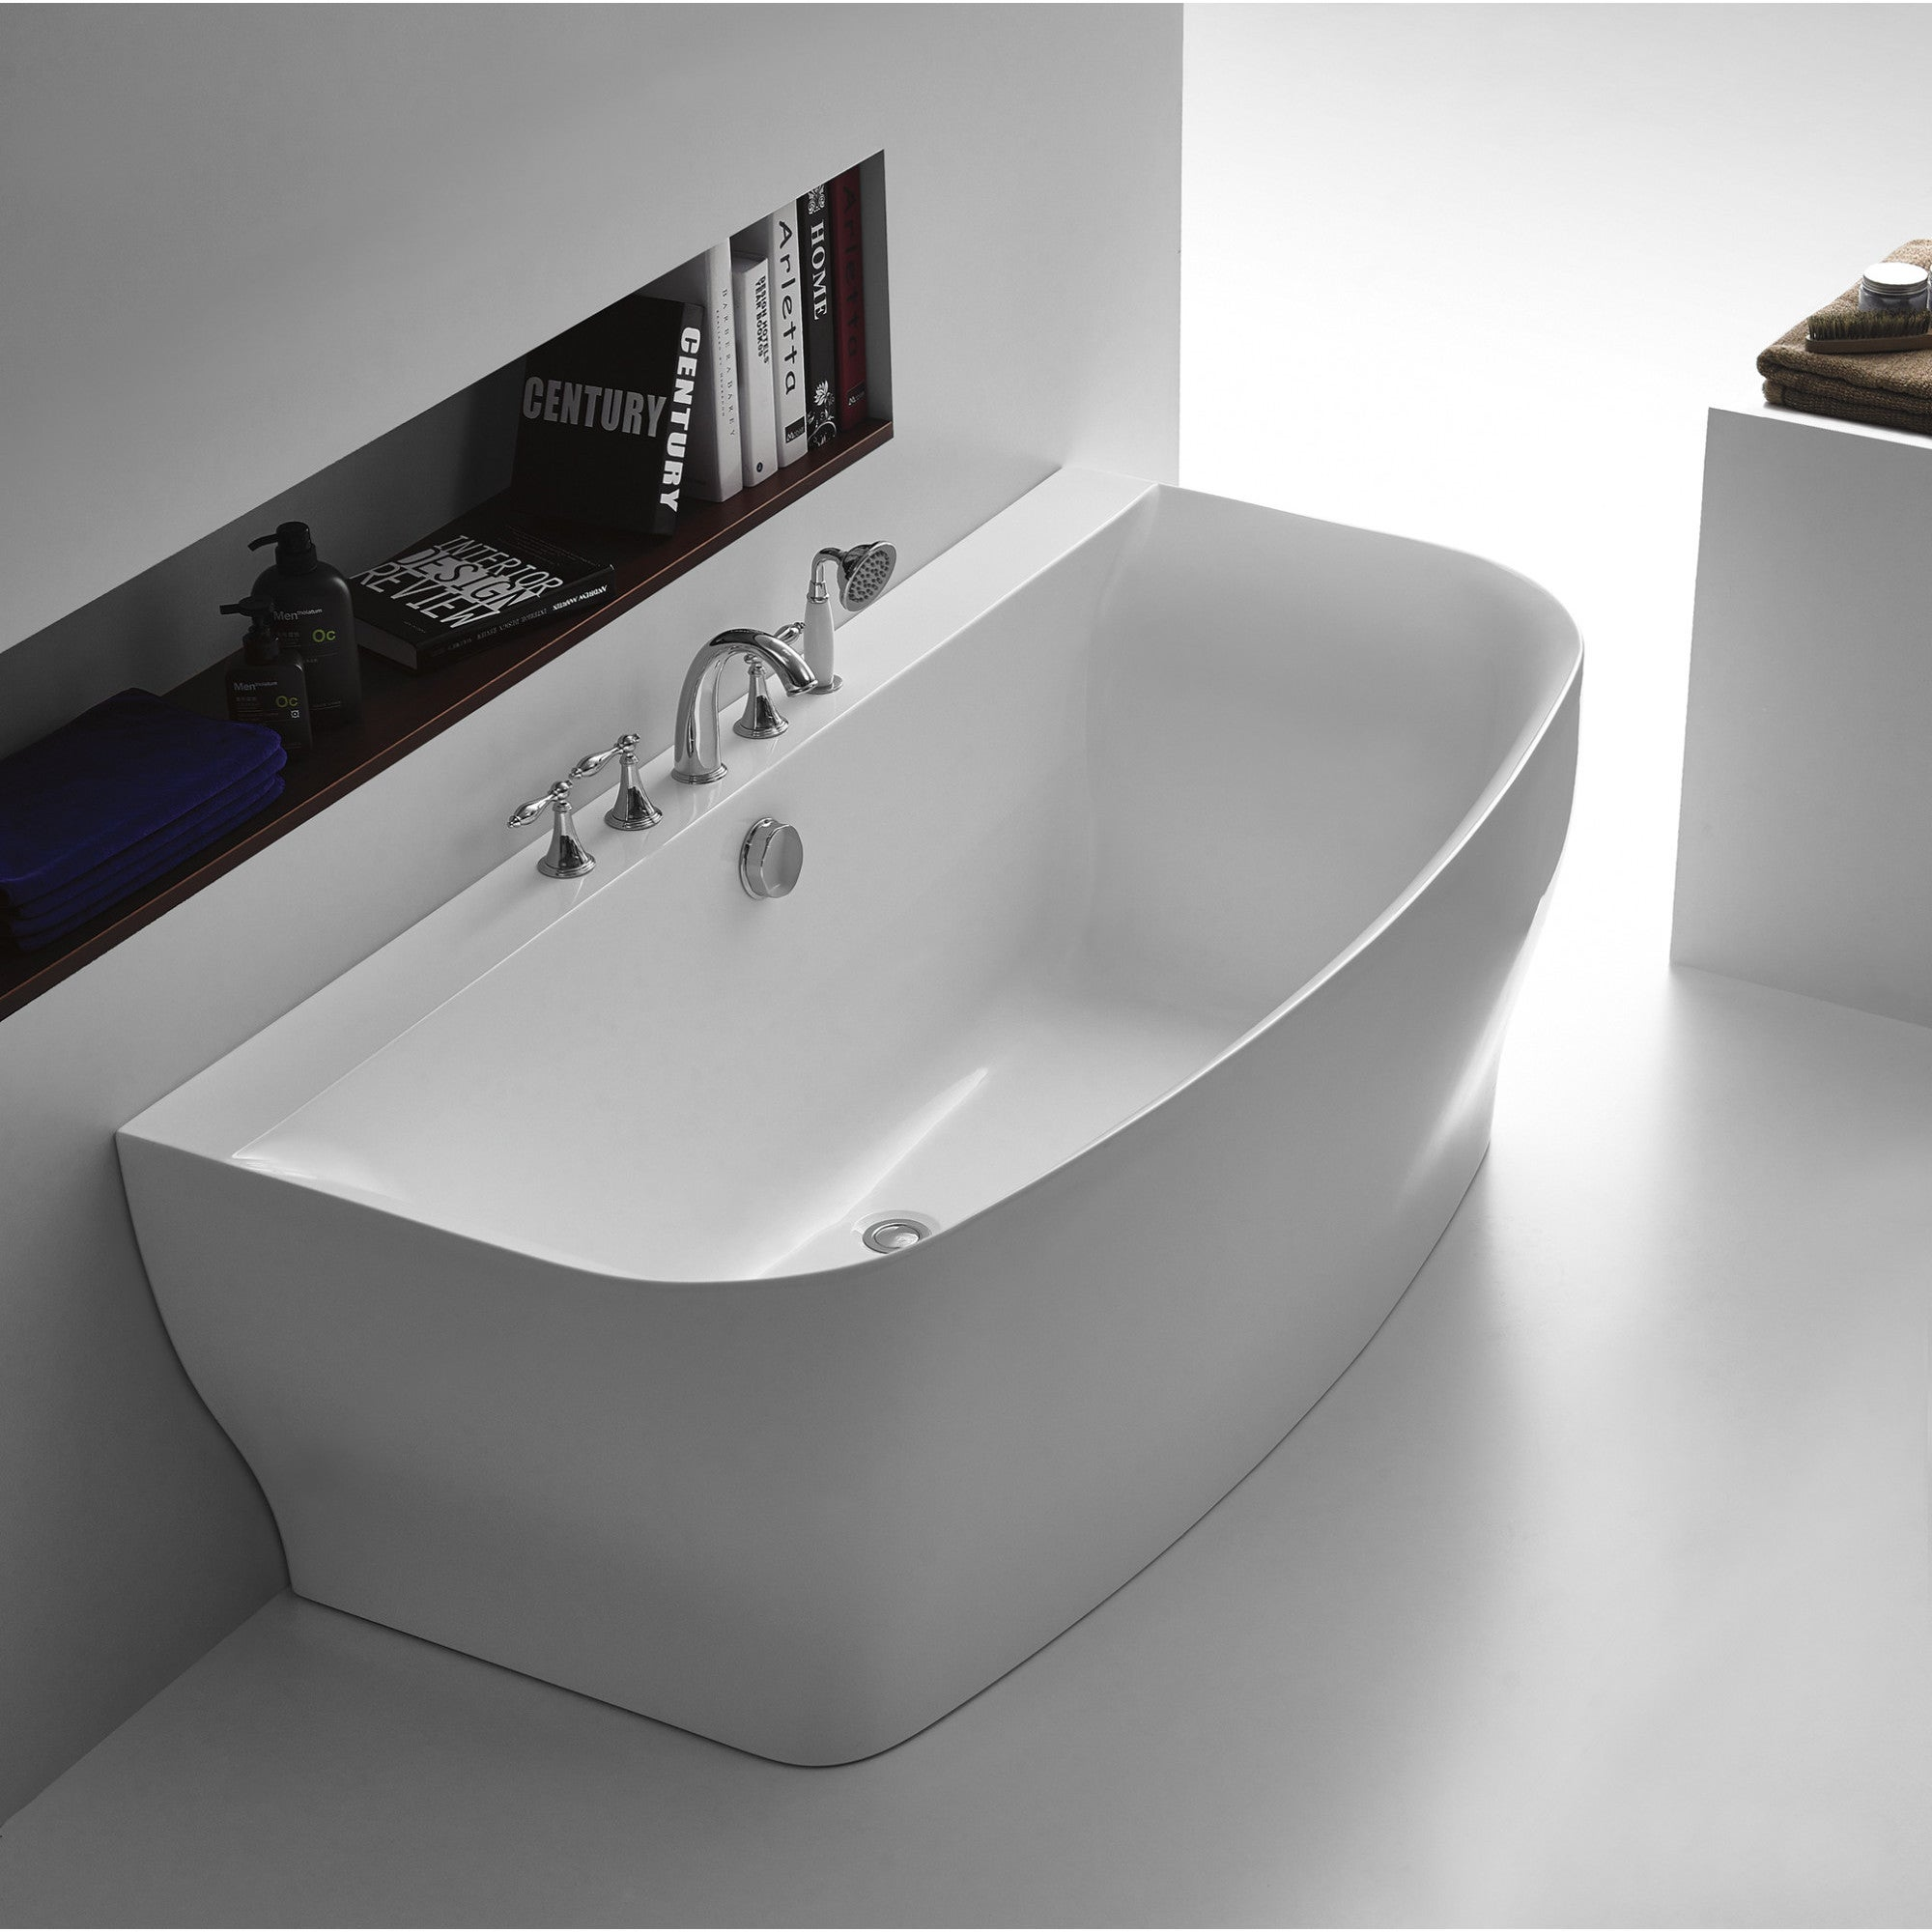 freestanding non whirlpool white canada in bath depot bathtubs p orchestra categories en whirlpools fibreglass ft and feet bathtub home the inch jetted tubs more